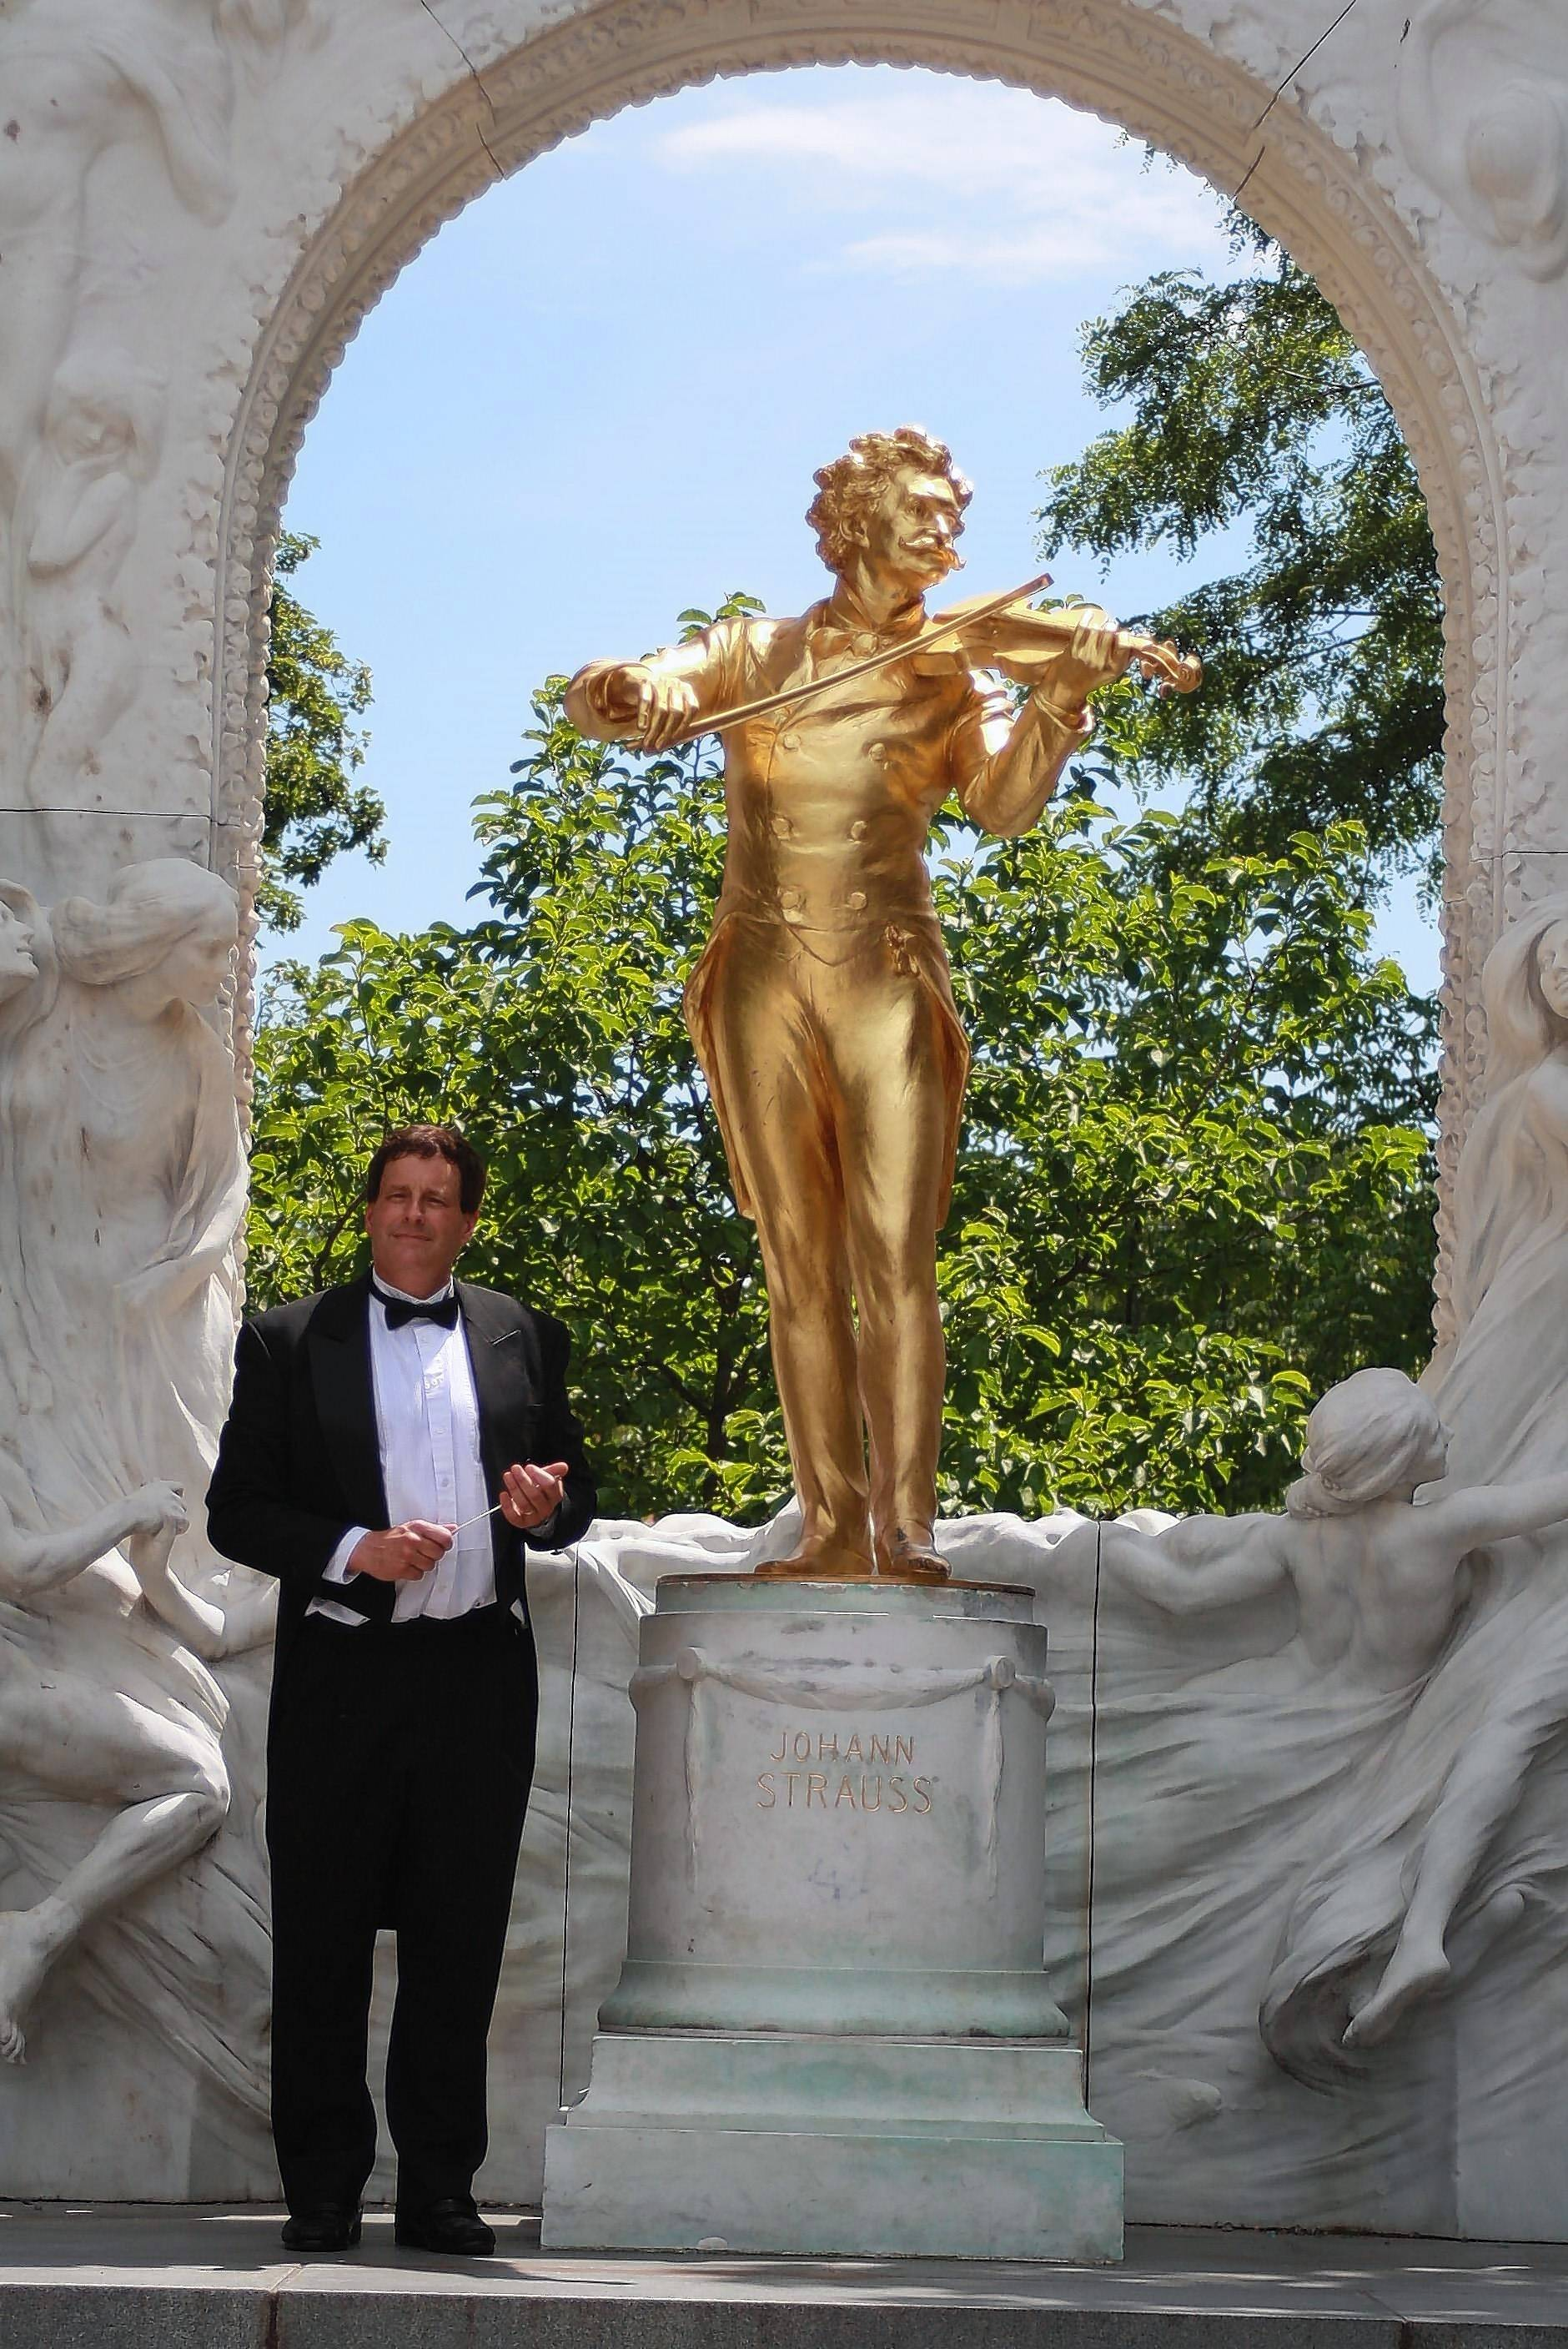 Ed Jacobi led the Buffalo Grove High School band on its first European concert tour in 1987 and will lead the band on one more tour, his 11th, in June. He is with a statue of Johann Strauss in Vienna's Stadtpark following the band's performance there in 2013.